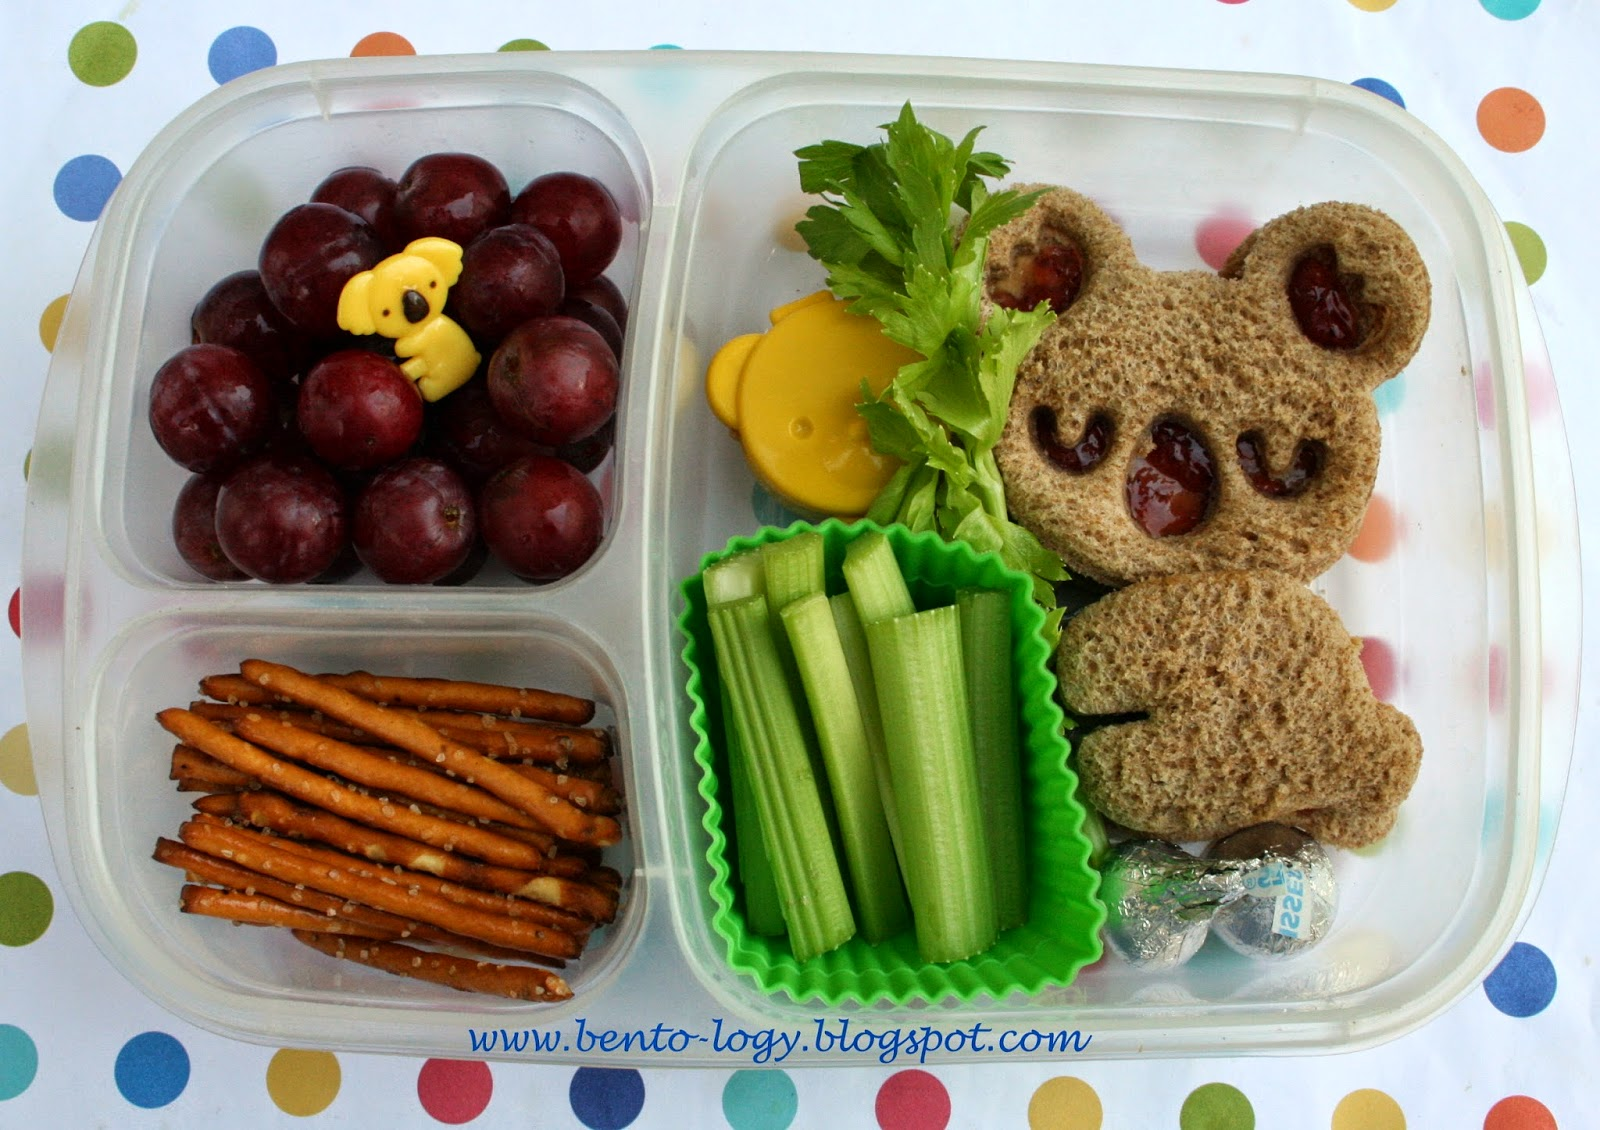 All It Takes Is A Cute Shaped Sandwich Cutter To Make This Adorable Koala Kids Bento Lunch Box From Logy